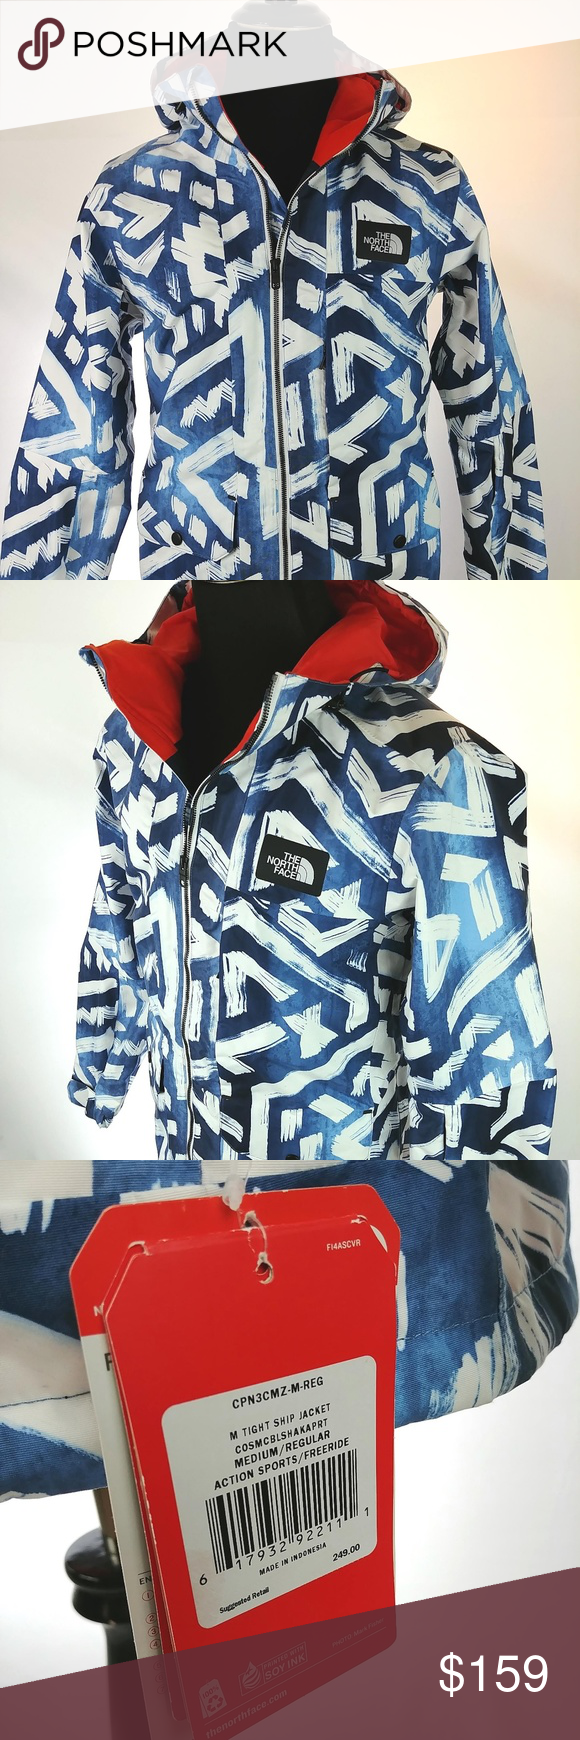 5a35a67c7 The North Face Mens Tight Ship Jacket Hyvent NEW The North Face Mens ...